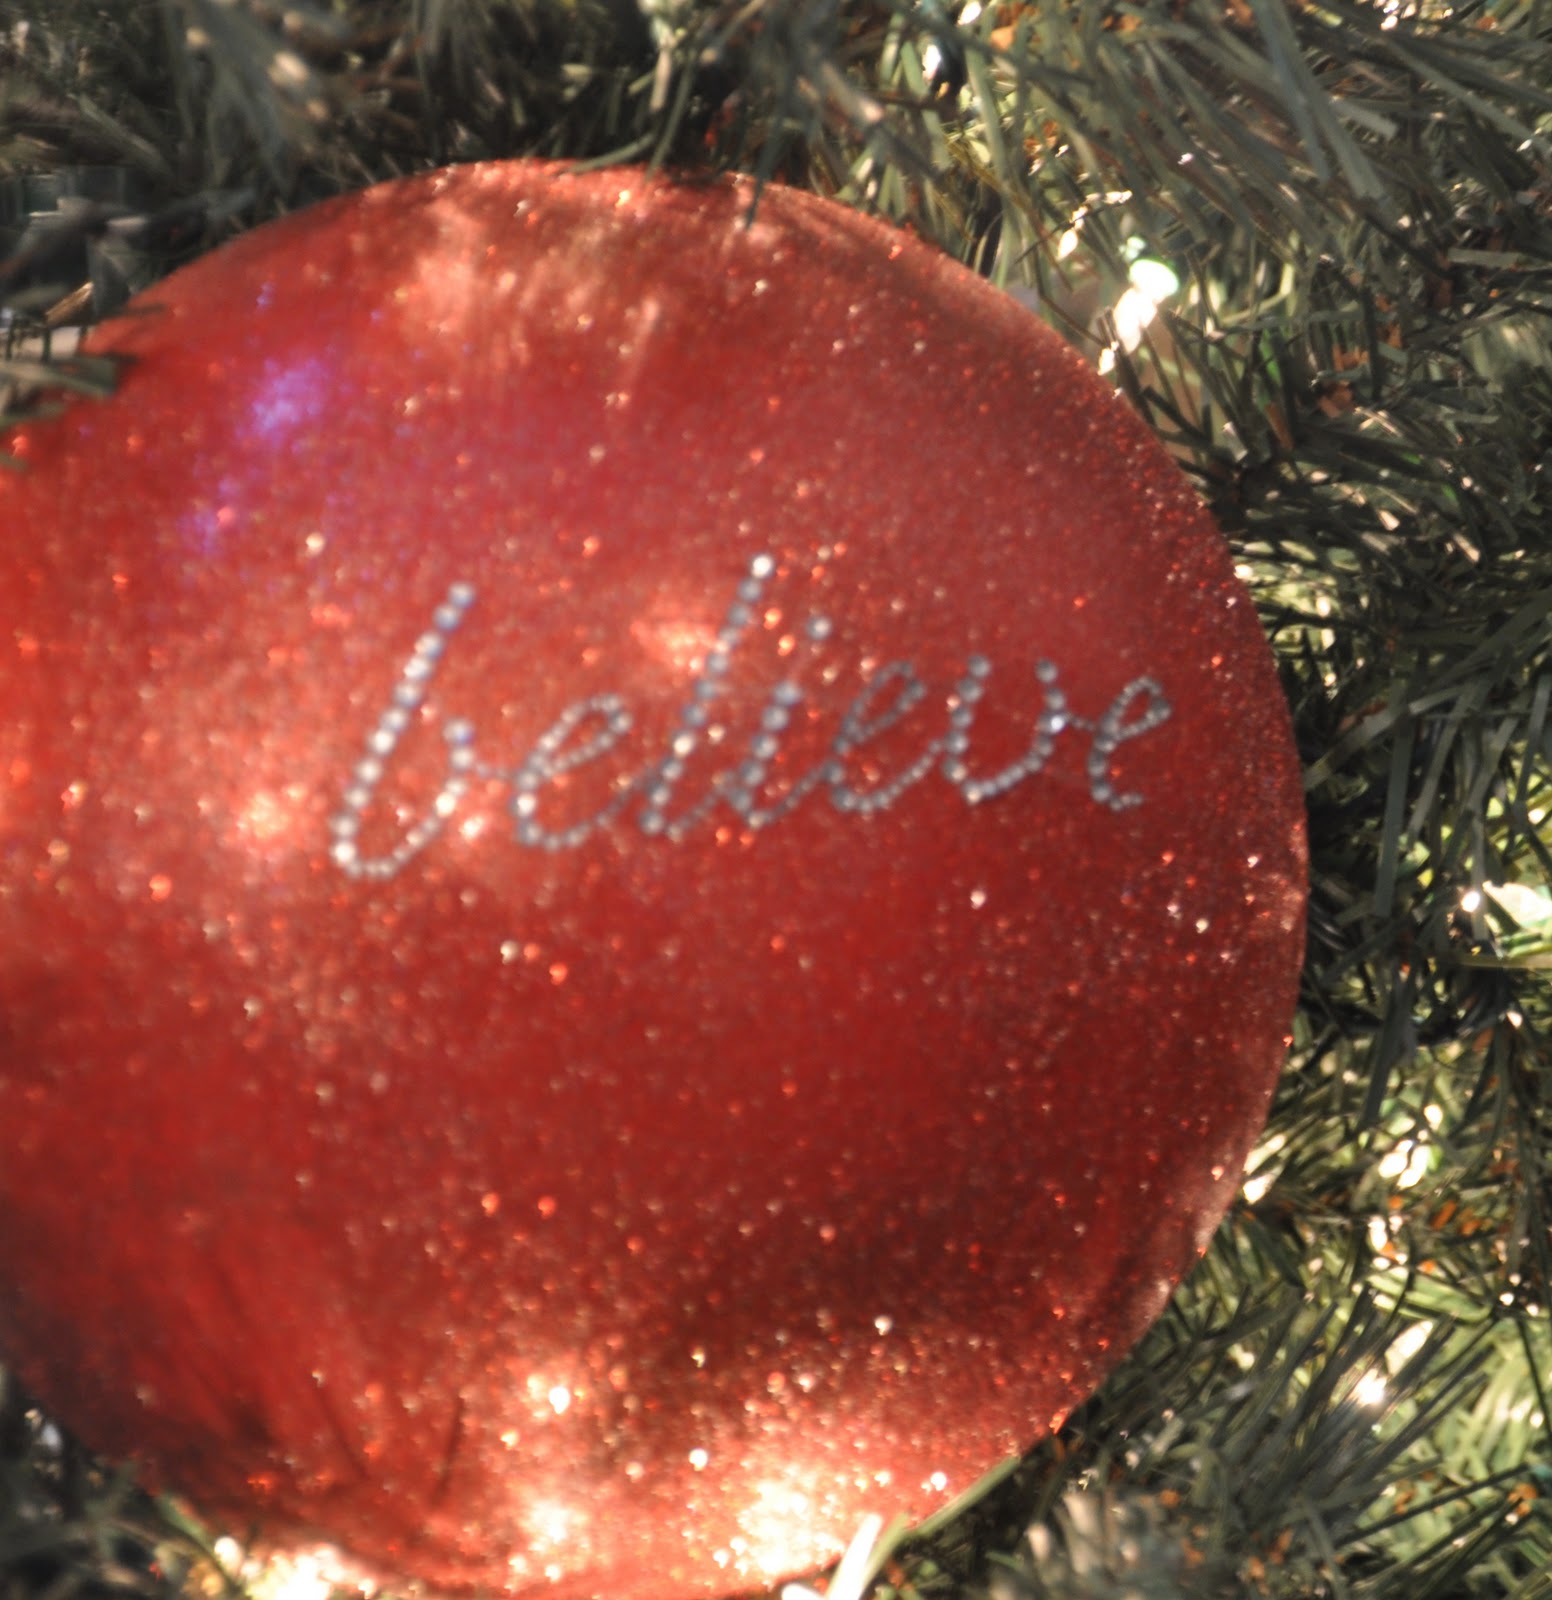 CURLY Q CRAFTS: Do it yourself Christmas ornaments